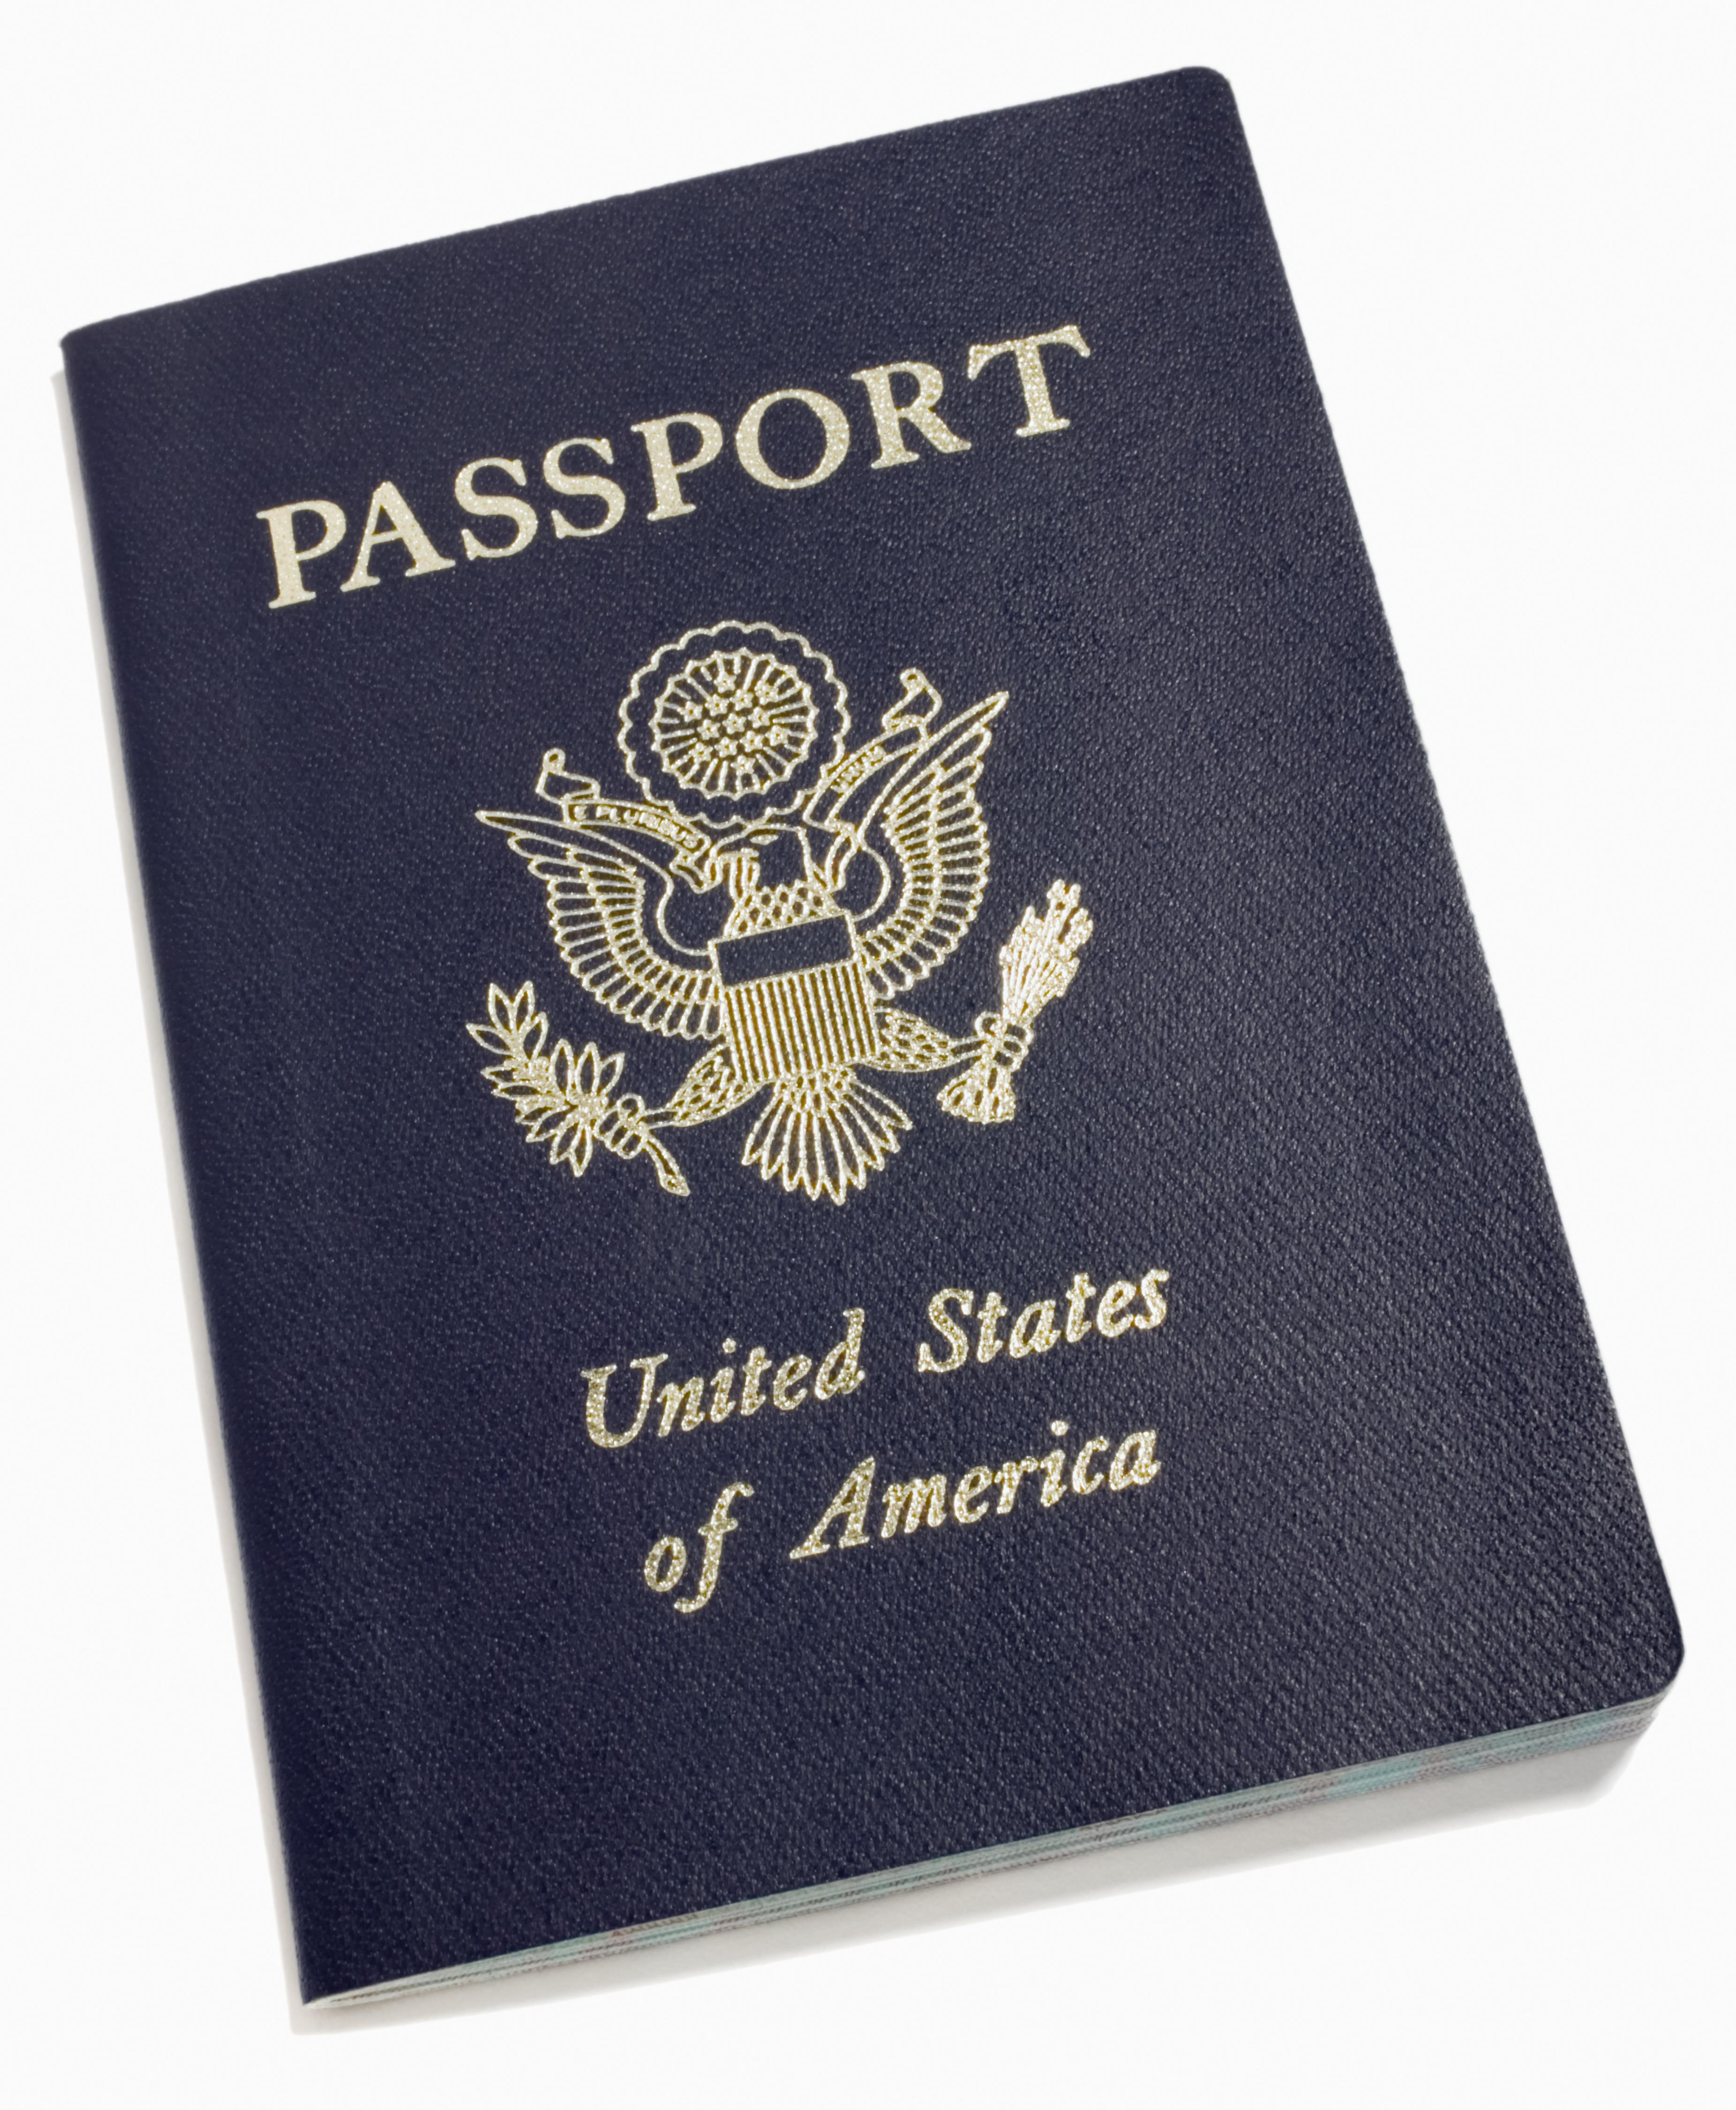 Passport from the United States of America